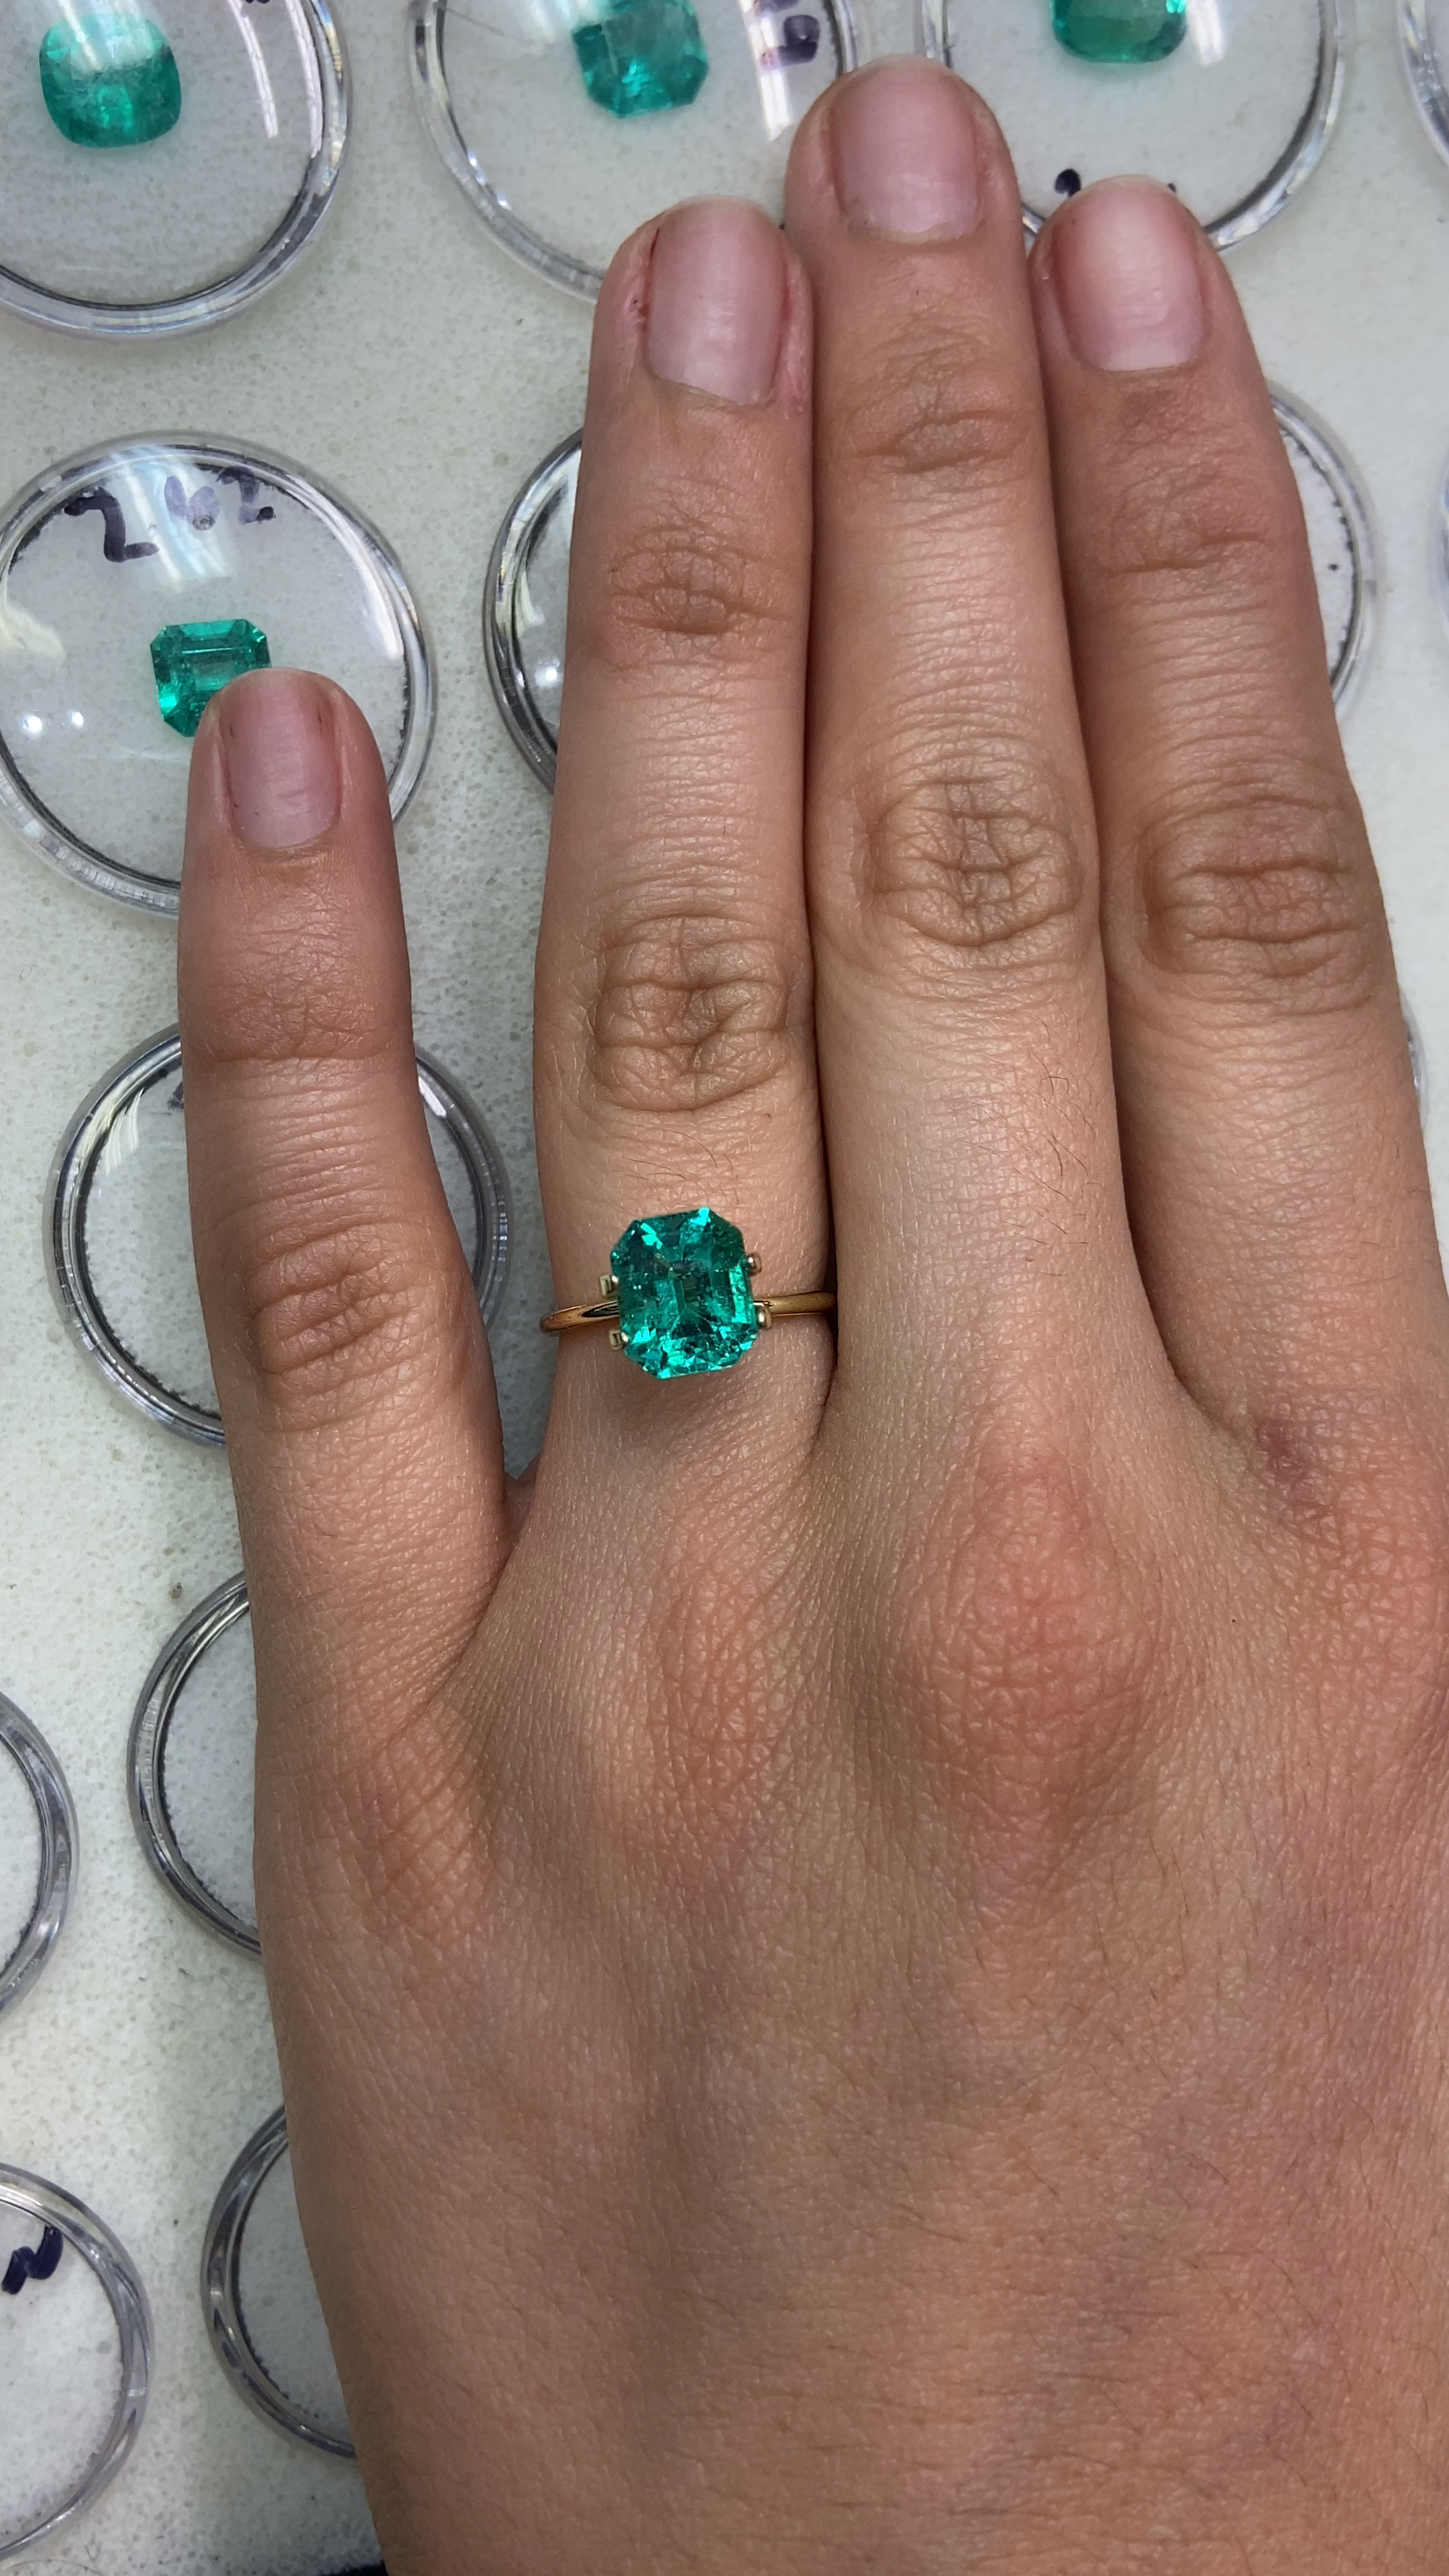 No emerald is perfect and this 2.83ct isn't the exception to the rule, however, when it comes to that sweet bluish-green color and excellent luster it's so easy to overlook nature's fingerprints. #emeraldring #emerald #emeralds #emeraldcut #finejewellery #jewelrylovers #jewelryaddiction #jewelryinspiration #gemstones #bespokejewellery #ringgoals #showmeyourrings #gemology #alternativeengagementring #alternativebridal #gemstonejewelry #highjewelry #colombianemerald #jewelgram #jewelrygoals